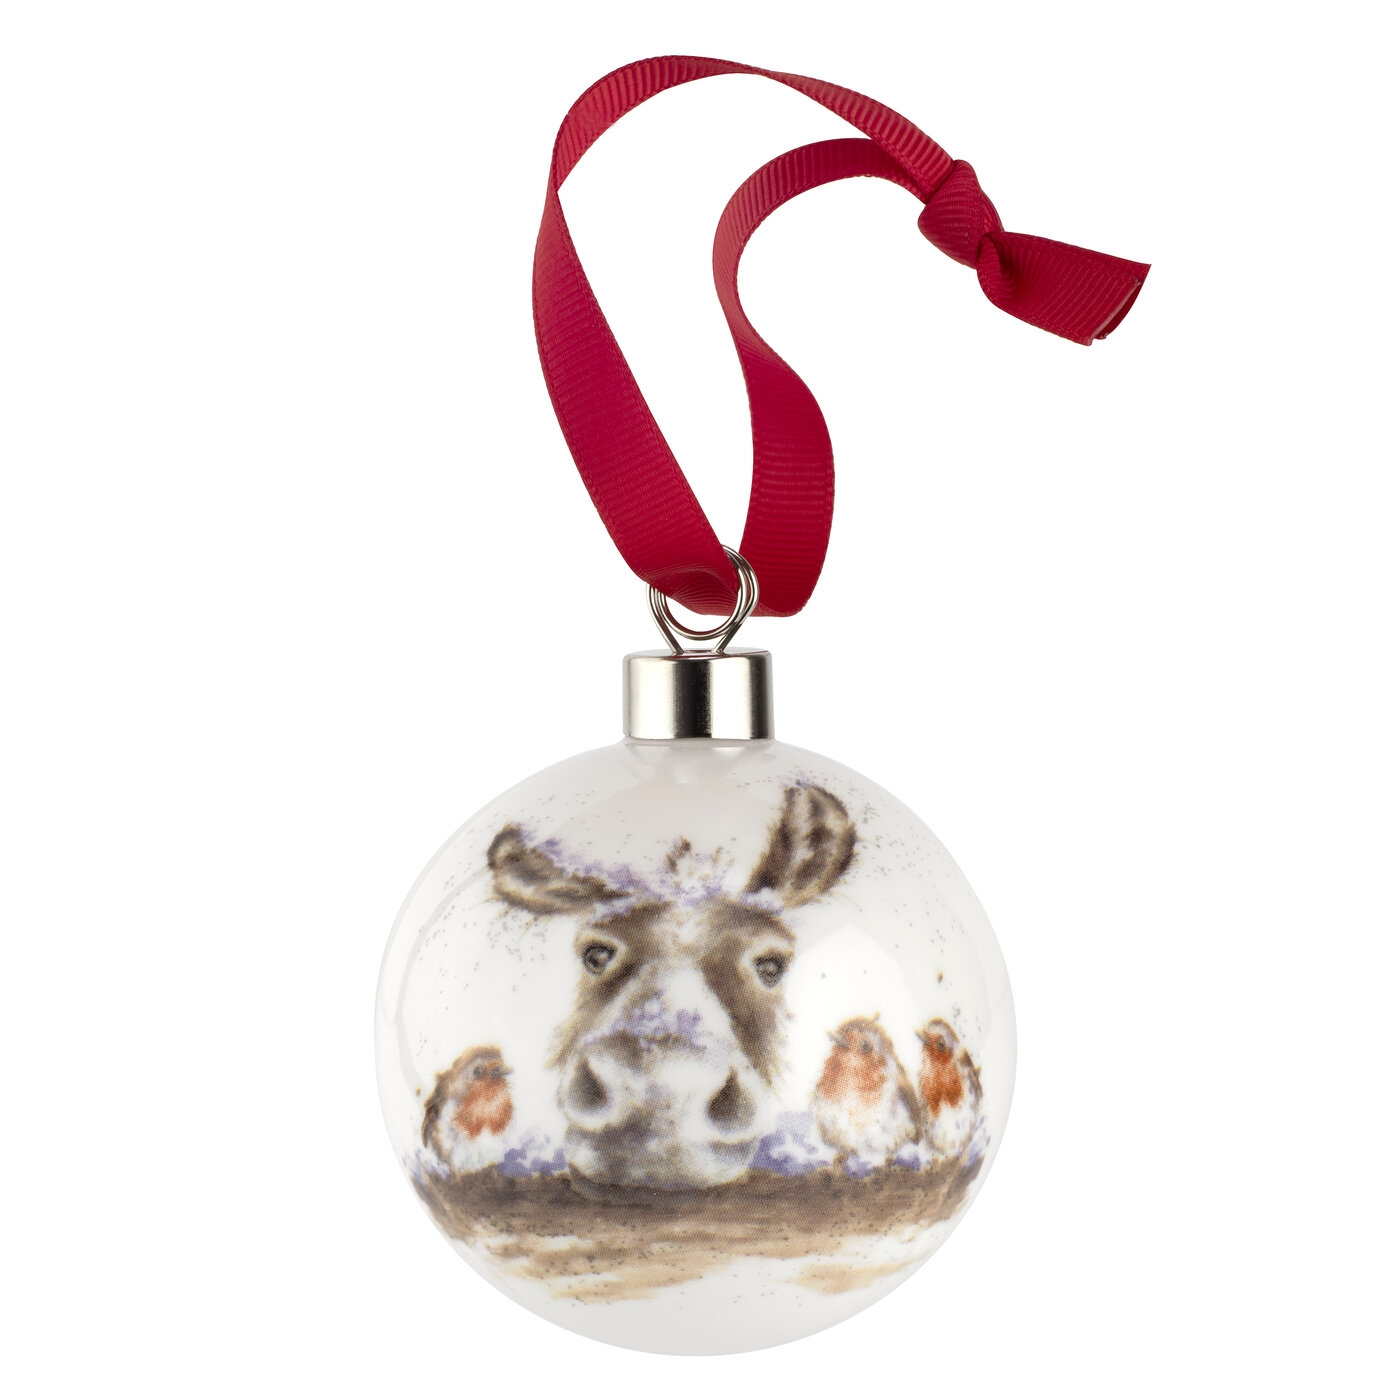 Royal Worcester Wrendale Designs Christmas Donkey Bauble (Robin) image number 0